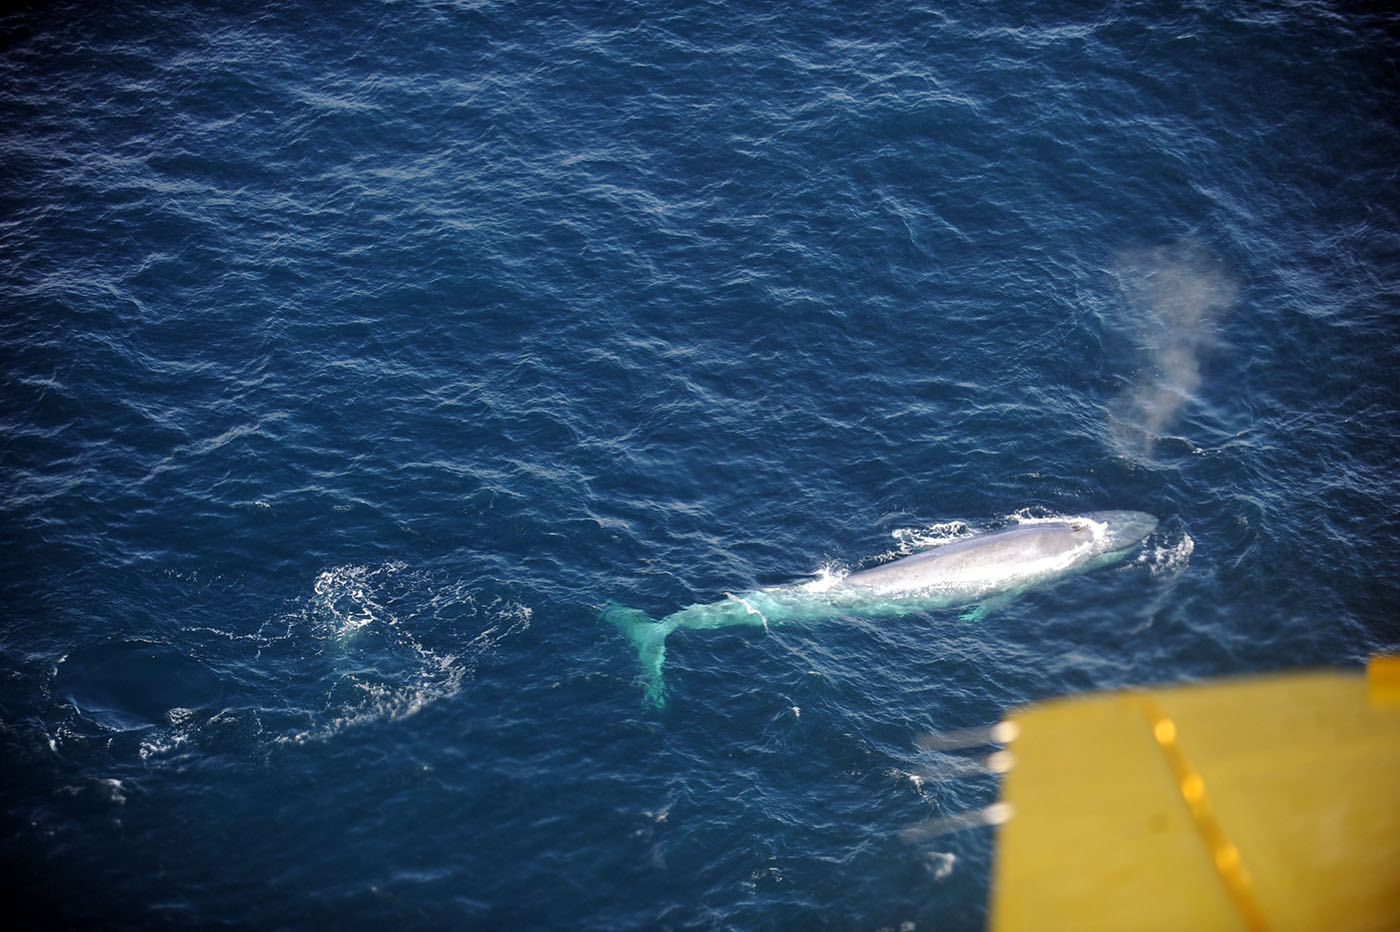 Blue whales seen by a fishery officer during an air patrol at the end of September off the coast of British Columbia